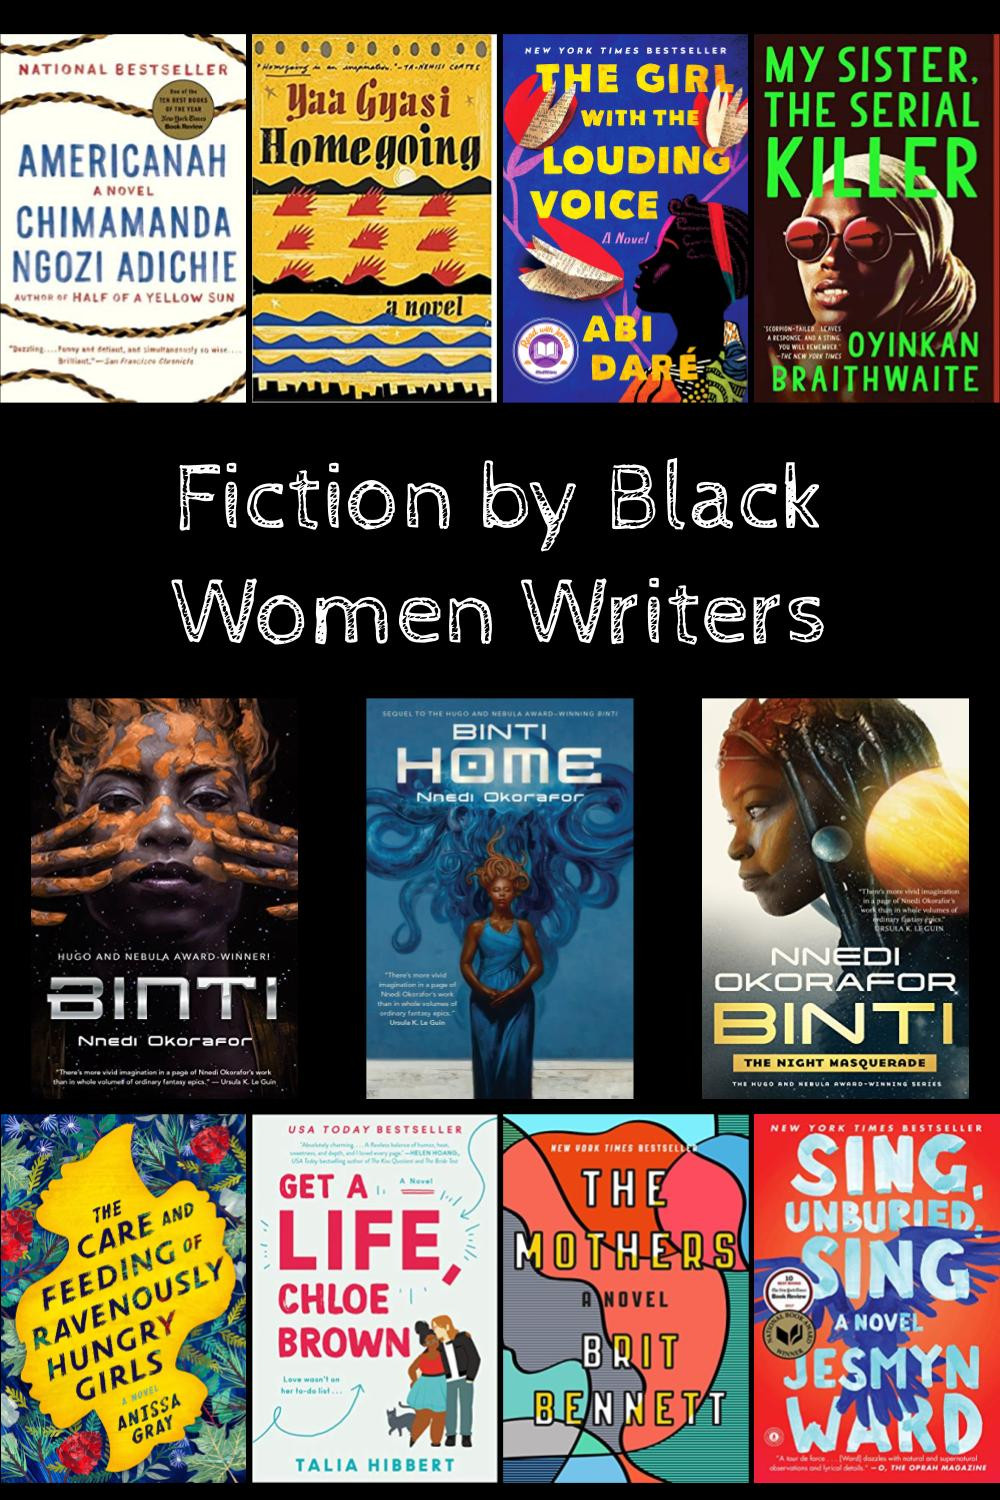 Collage of book covers by Black authors